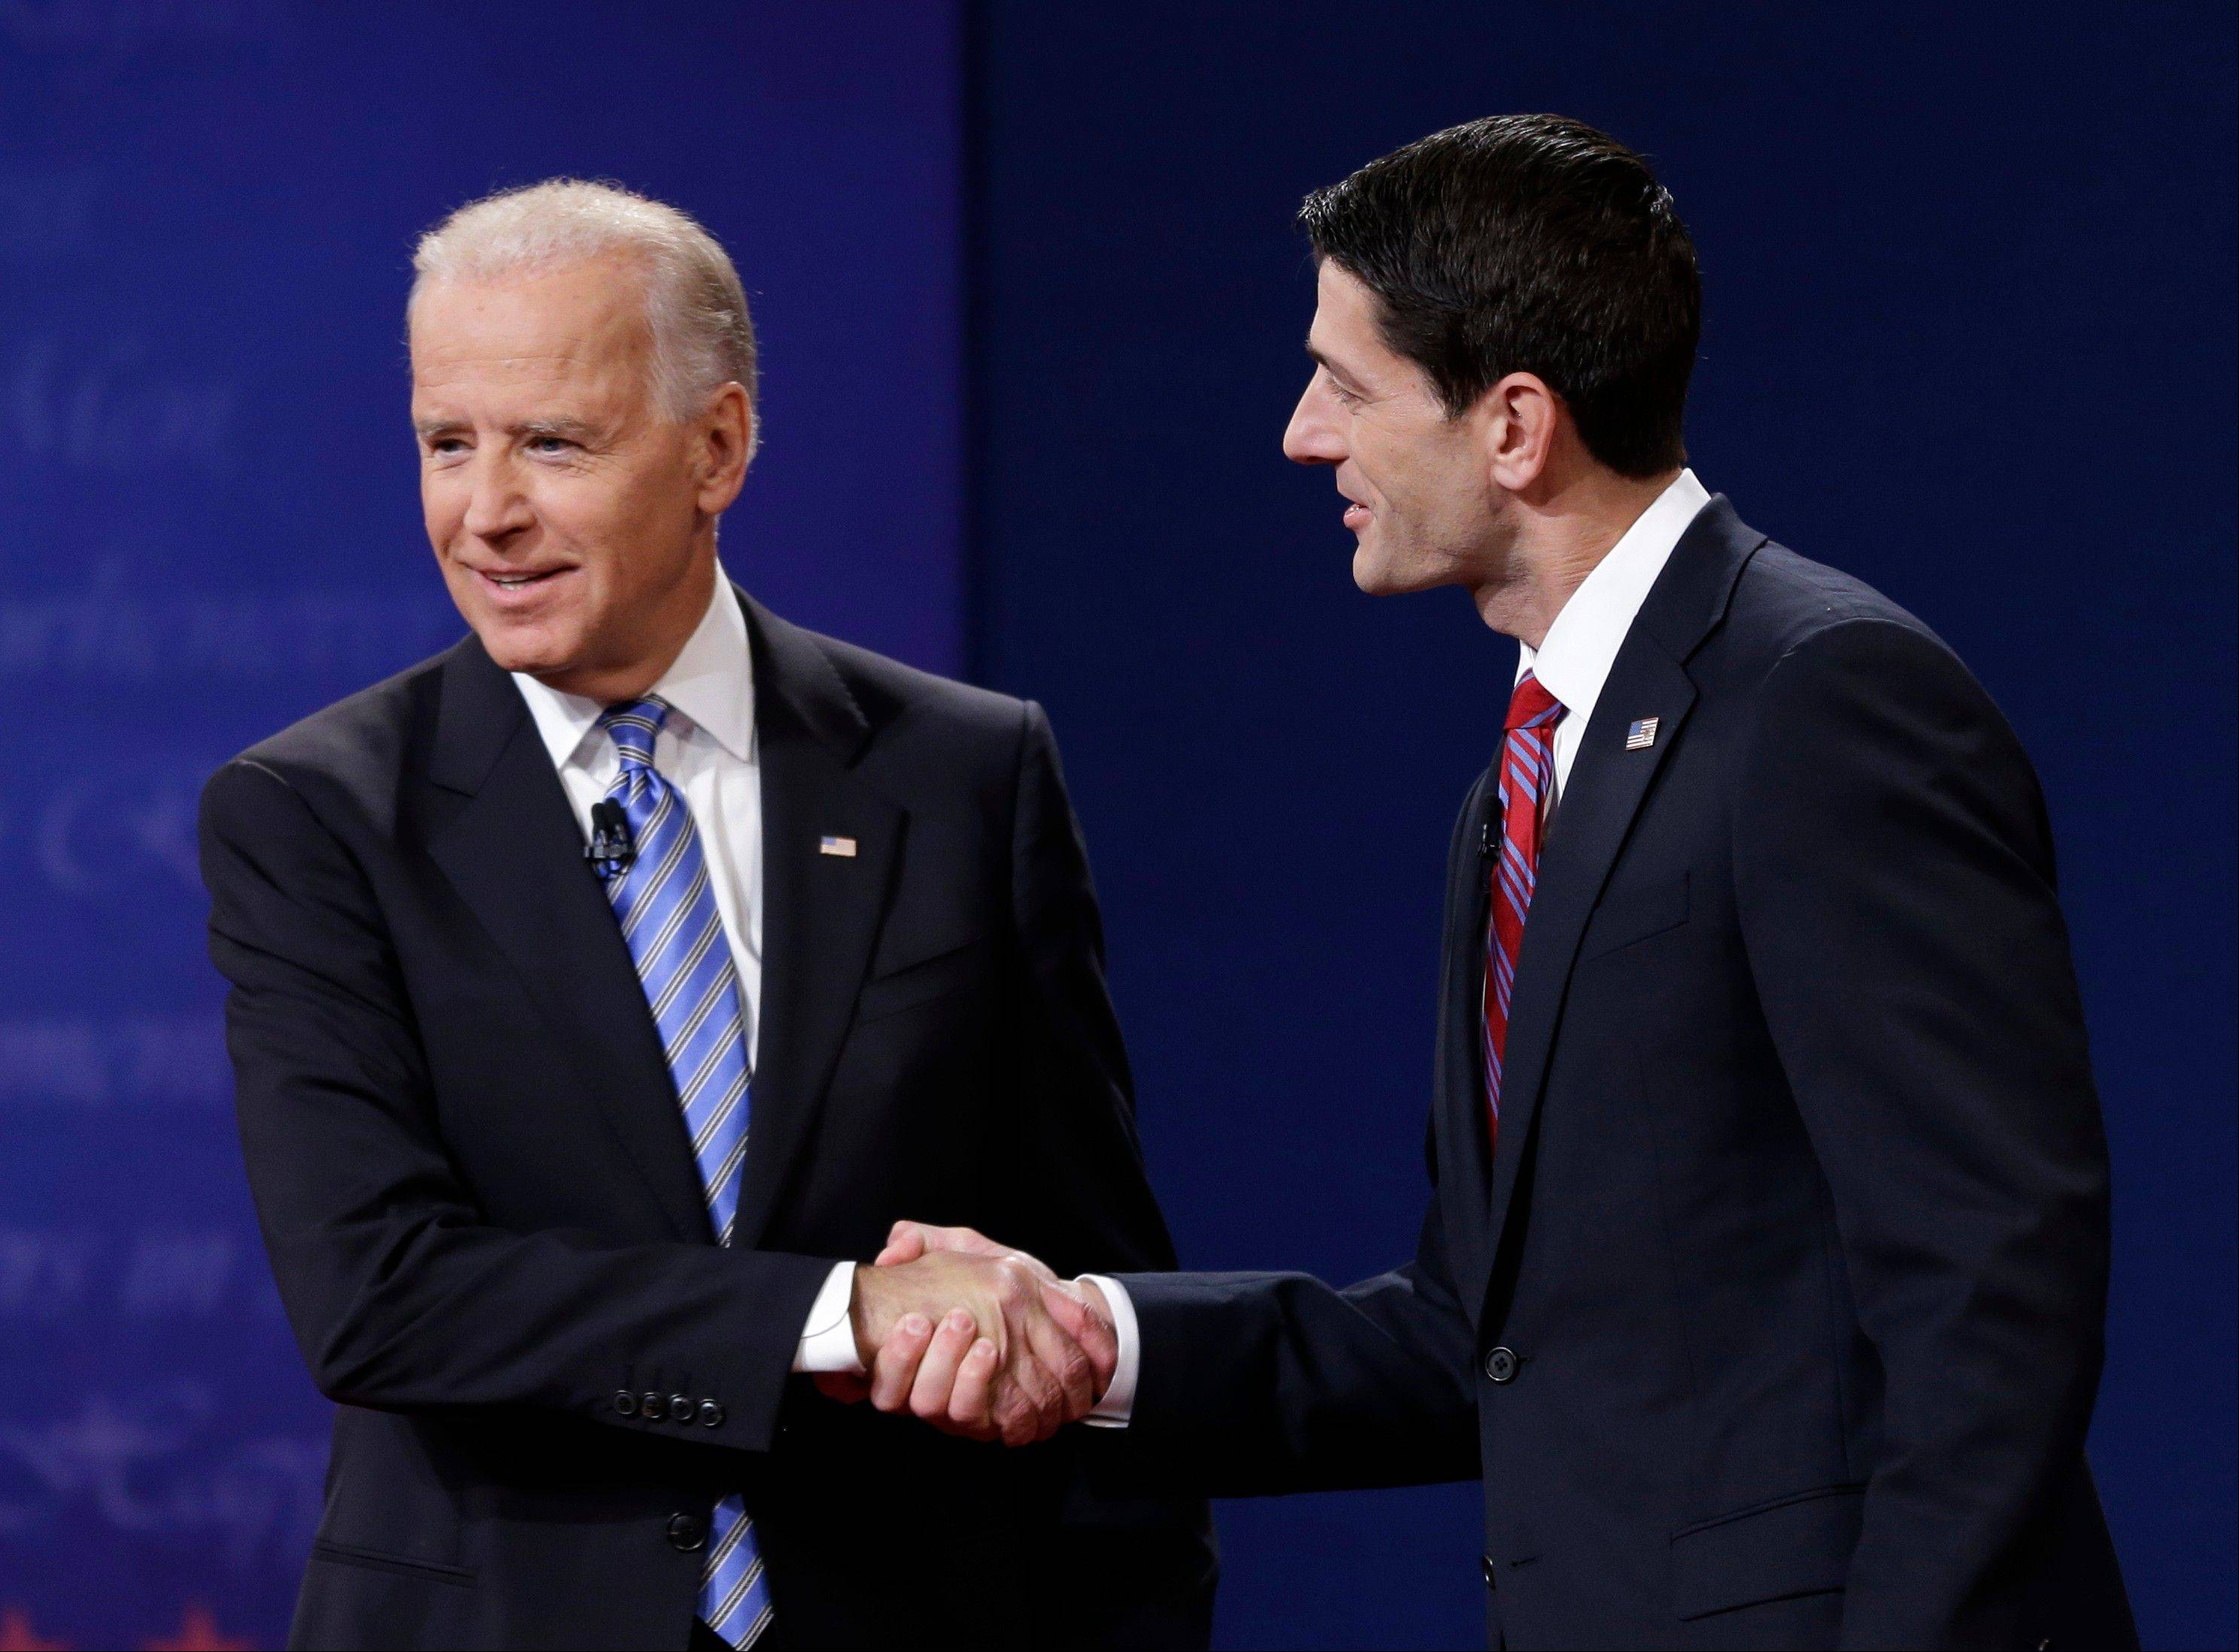 Vice President Joe Biden, left, and Republican vice presidential nominee Paul Ryan of Wisconsin shake hands during the vice presidential debate at Centre College.